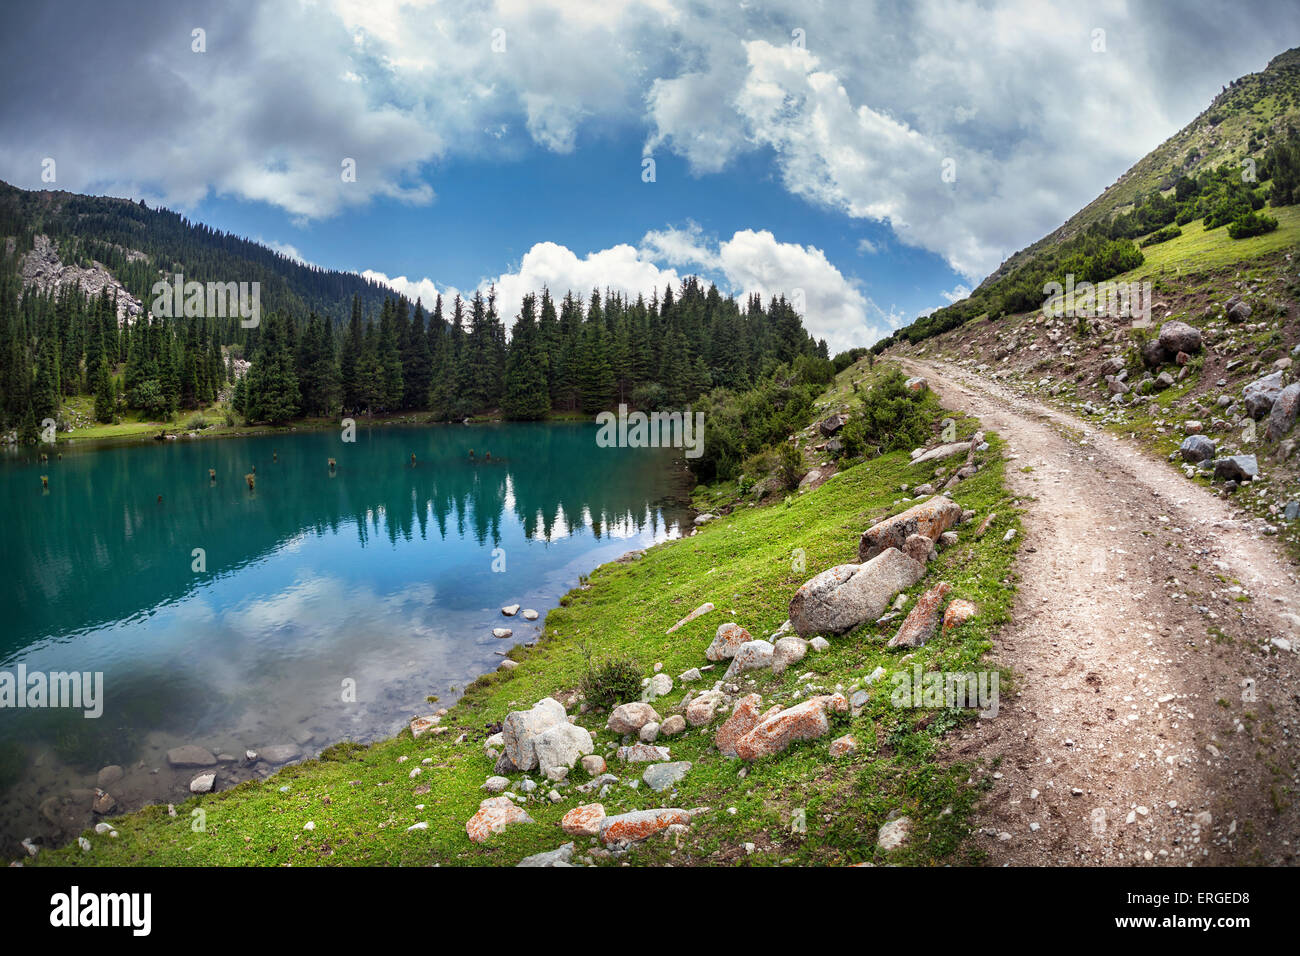 Mountain Saint lake in Gregory gorge in Kyrgyzstan, Central Asia Stock Photo